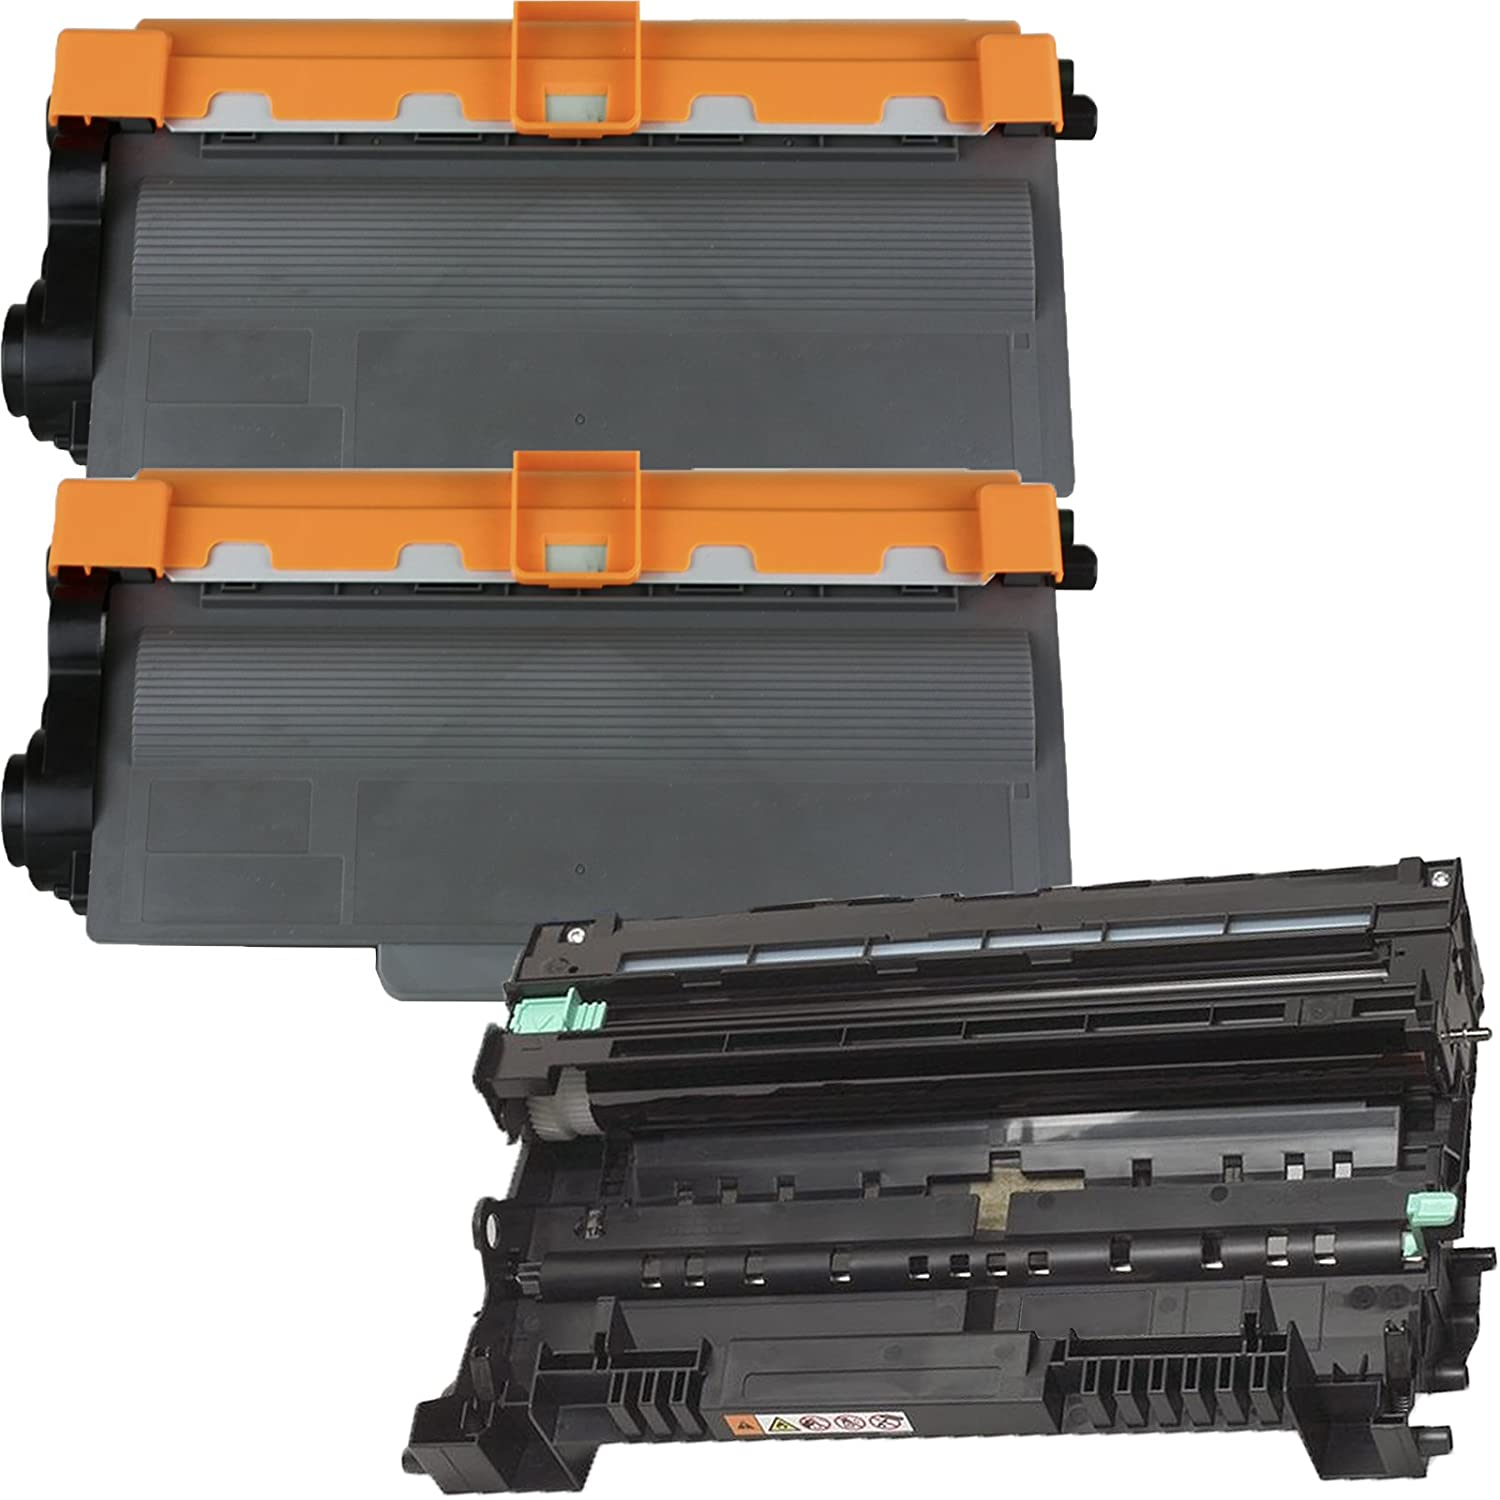 (1 Drum + 2 Toner) Inktoneram® Replacement toner cartridges & drum for Brother TN750 TN720 DR720 for Brother DR-720 TN-750 TN-720 Set MFC-8510DN MFC-8710DW MFC-8810DW MFC-8910DW MFC-8950DW MFC-8950DWT DCP-8110DN DCP-8